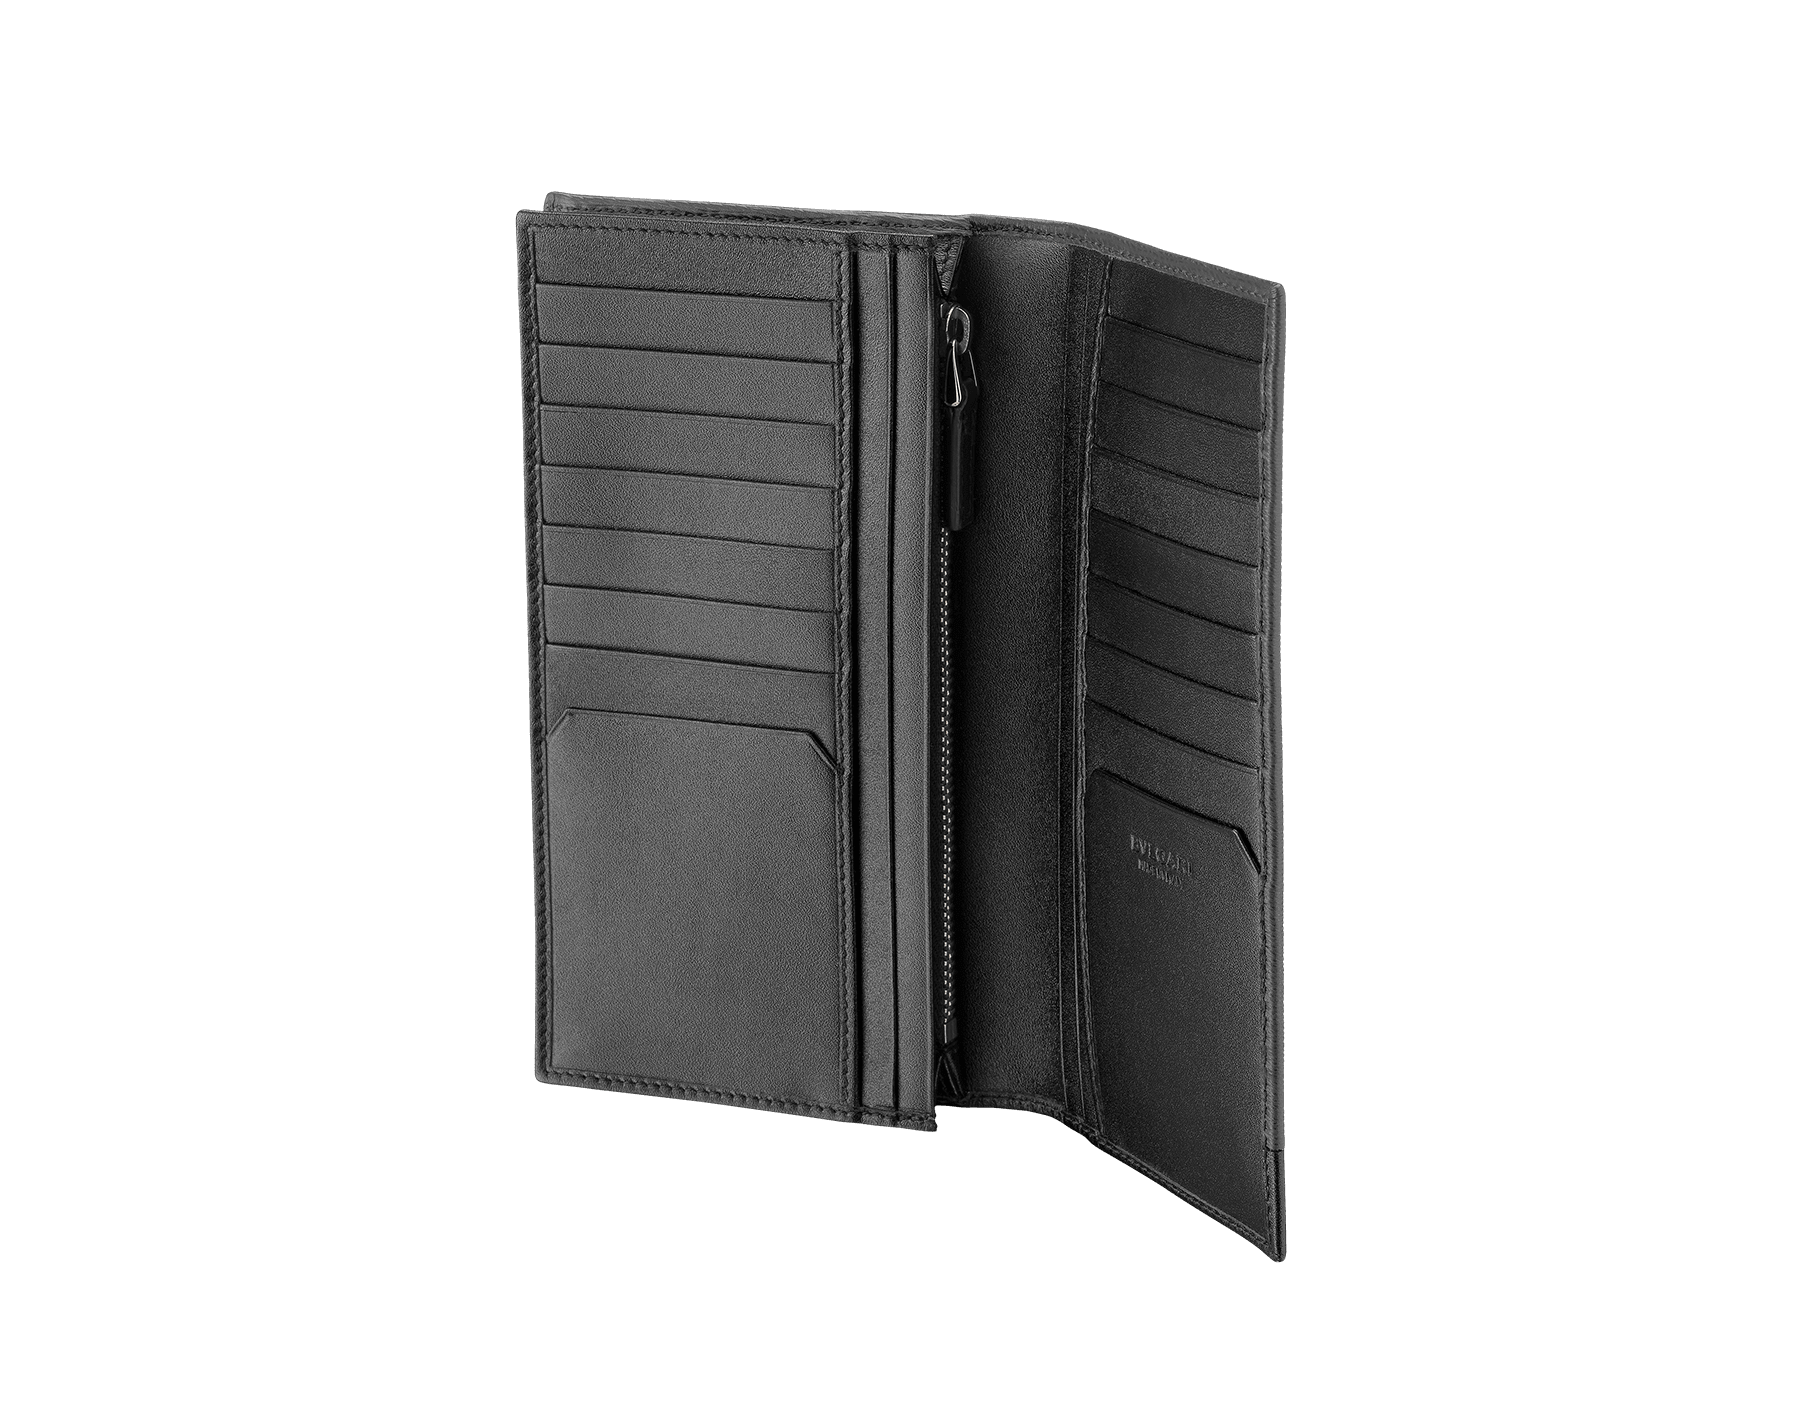 Wallet for yen in black grazed calf leather with brass and black calf leather. Bulgari logo on metal plate featuring the iconic Serpenti Scaglie Man motif. 284731 image 2